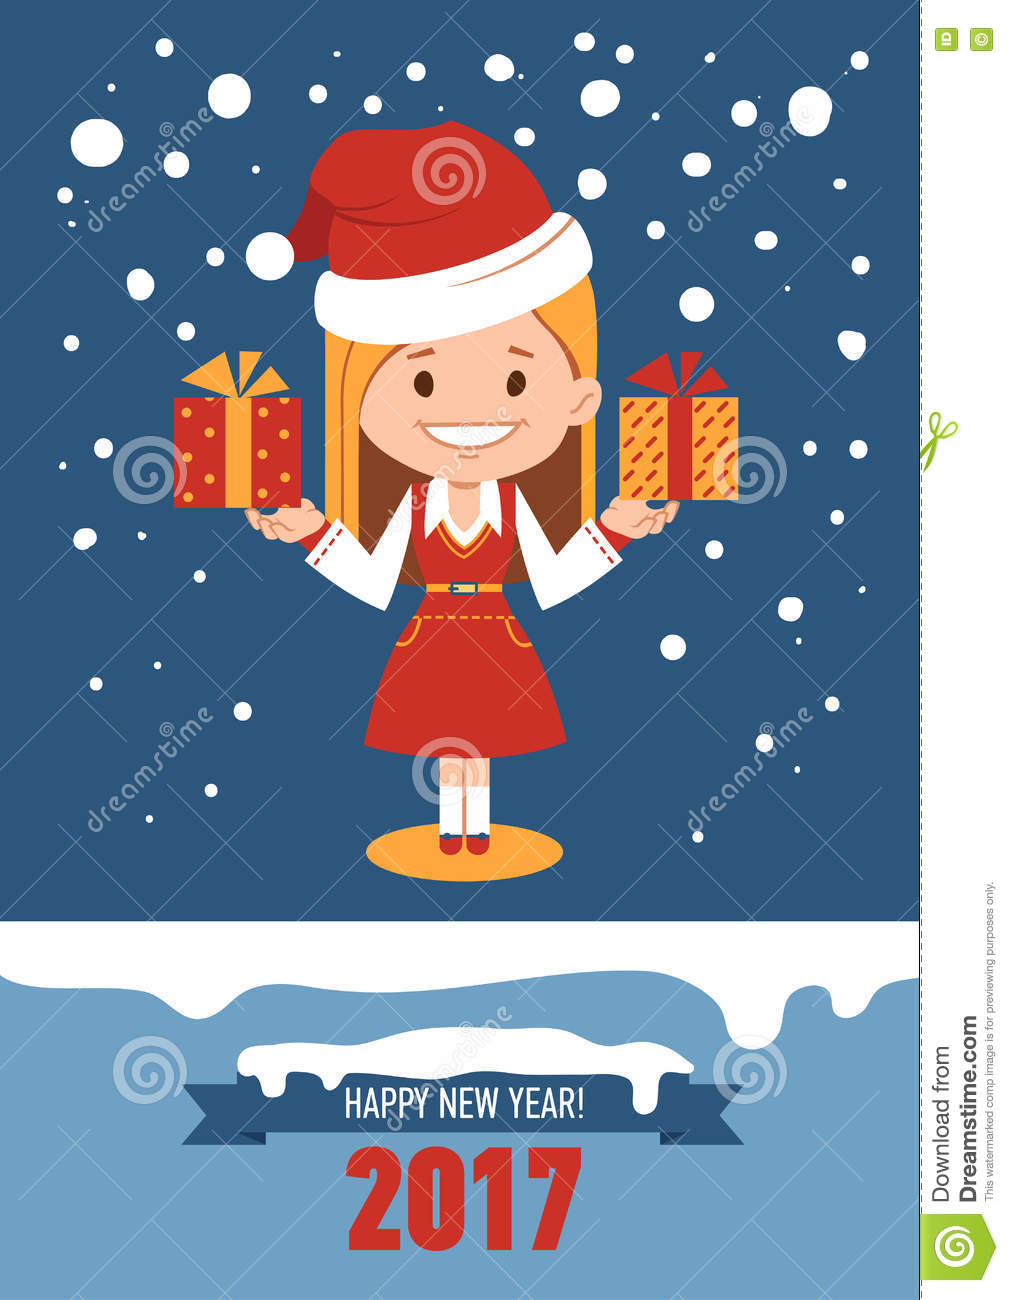 template of holiday postcard new year 2017 card stock vector template of holiday postcard new year 2017 card